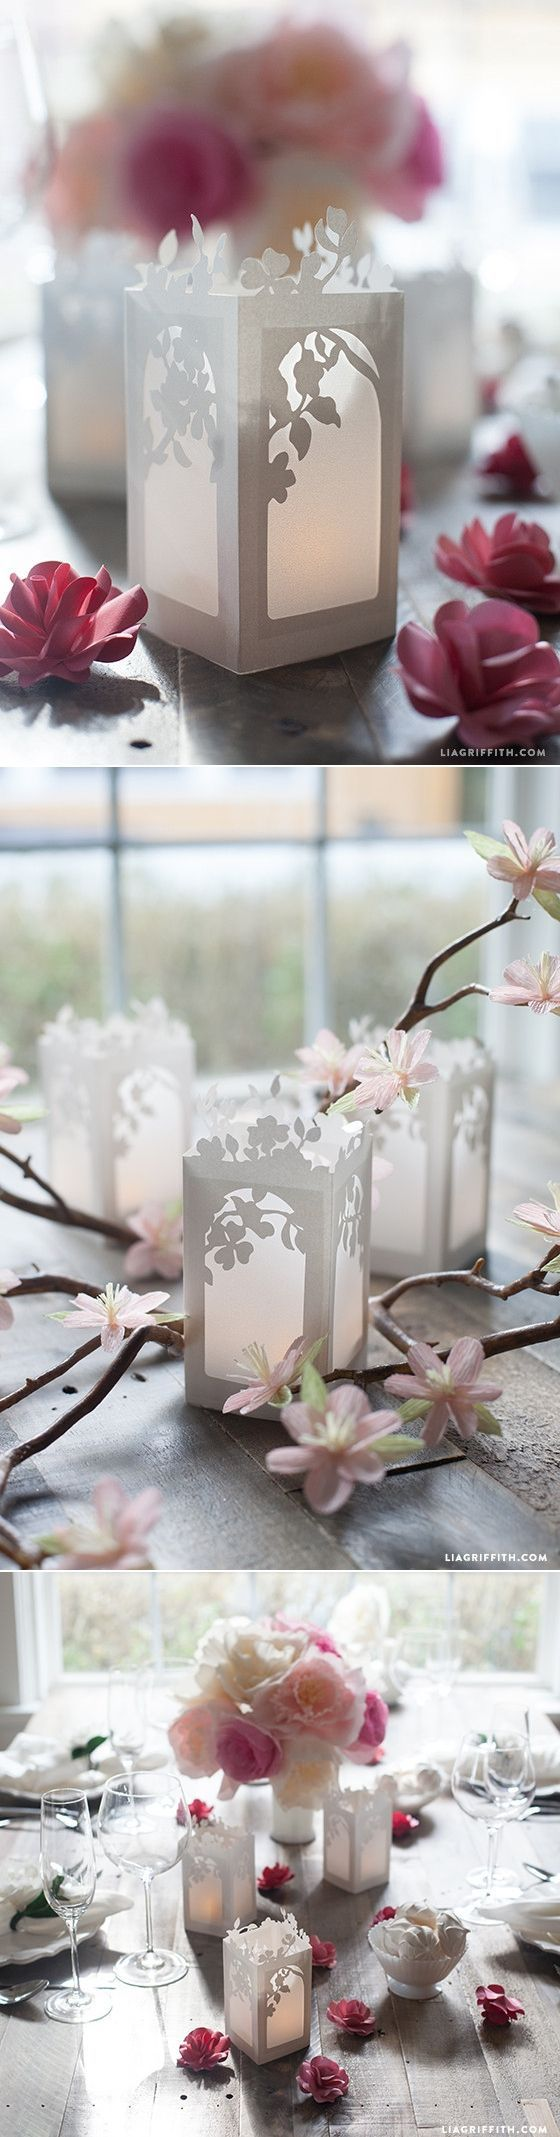 Spring in Bloom Paper Lanterns - Tutorial and template at www.LiaGriffith.com #wedding #diywedding #paperlanterns